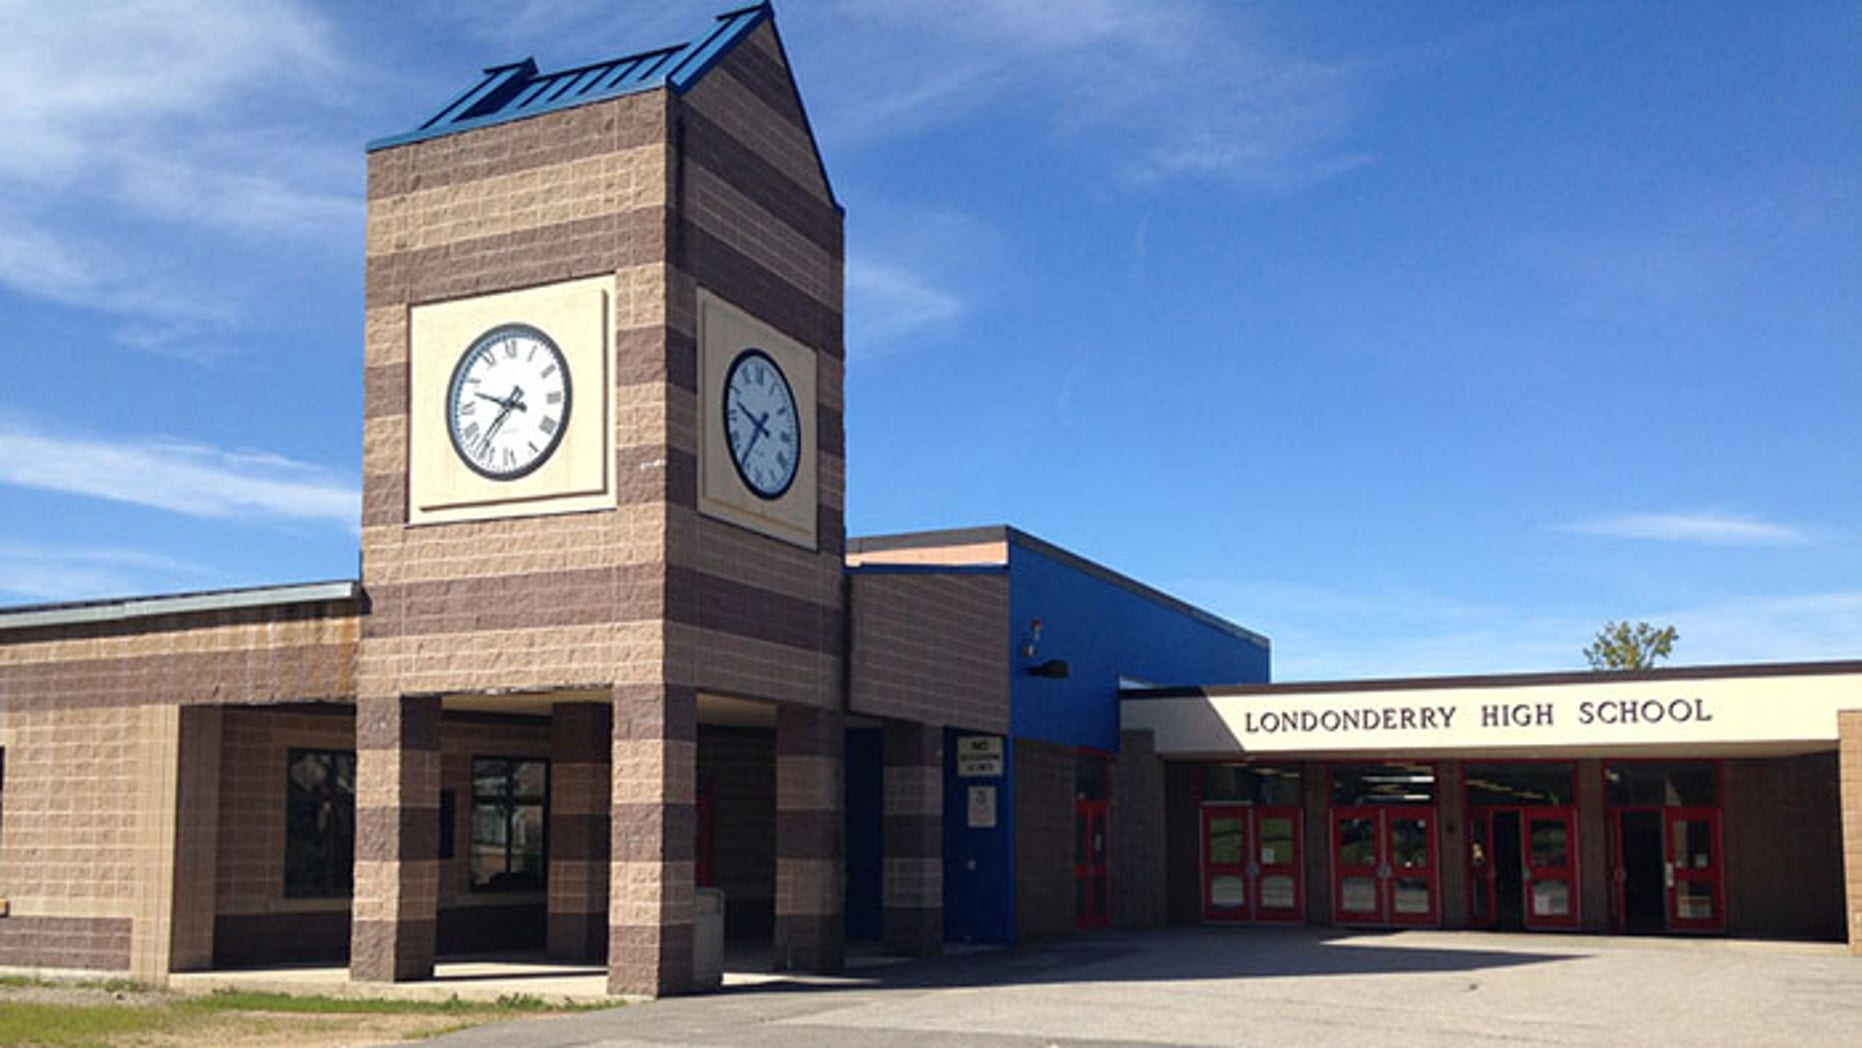 The Board of Education scrapped the program for the high school after seeing too many meals discarded, according to Superintendent Nathan Greenberg.